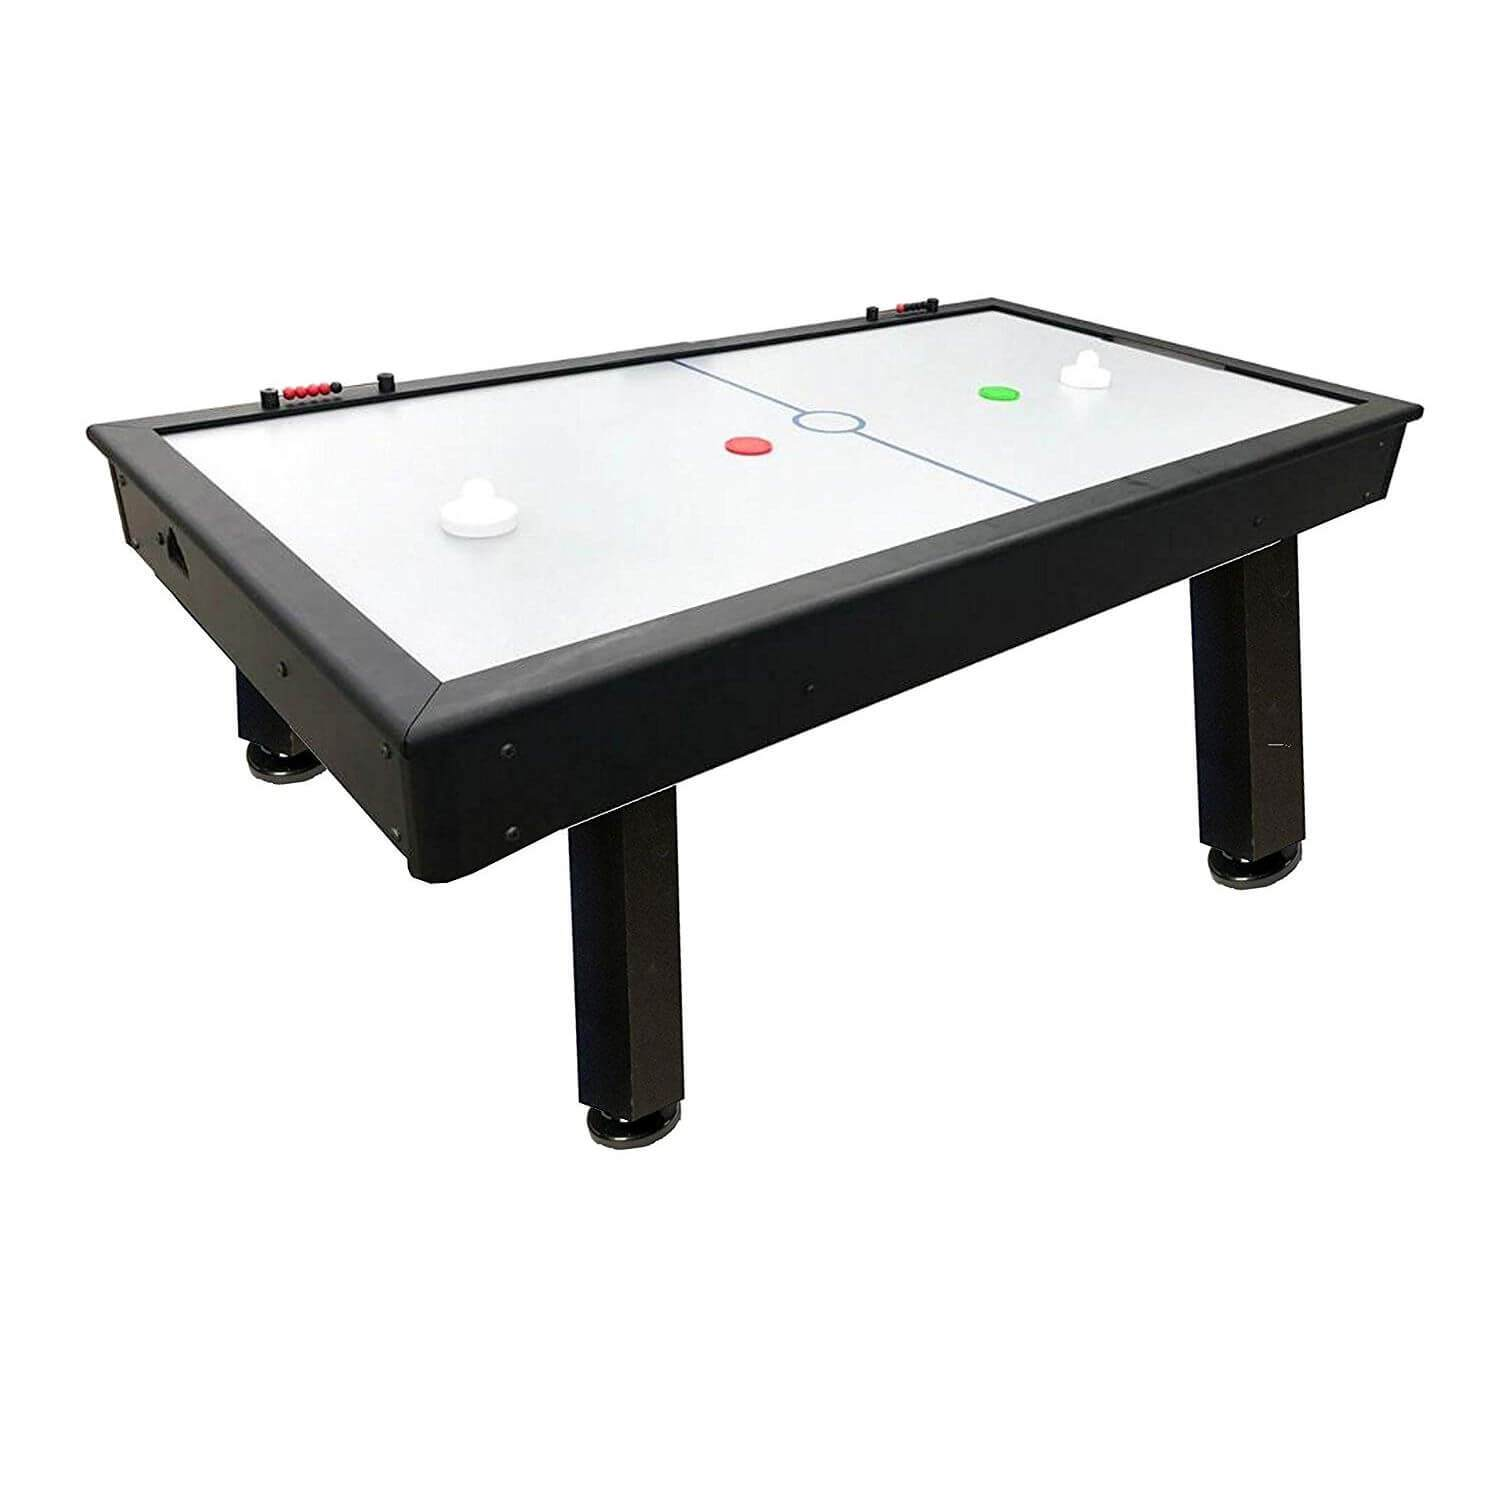 "Performance Games Tradewind R1 Black 88"" Air Hockey Table - Gaming Blaze"